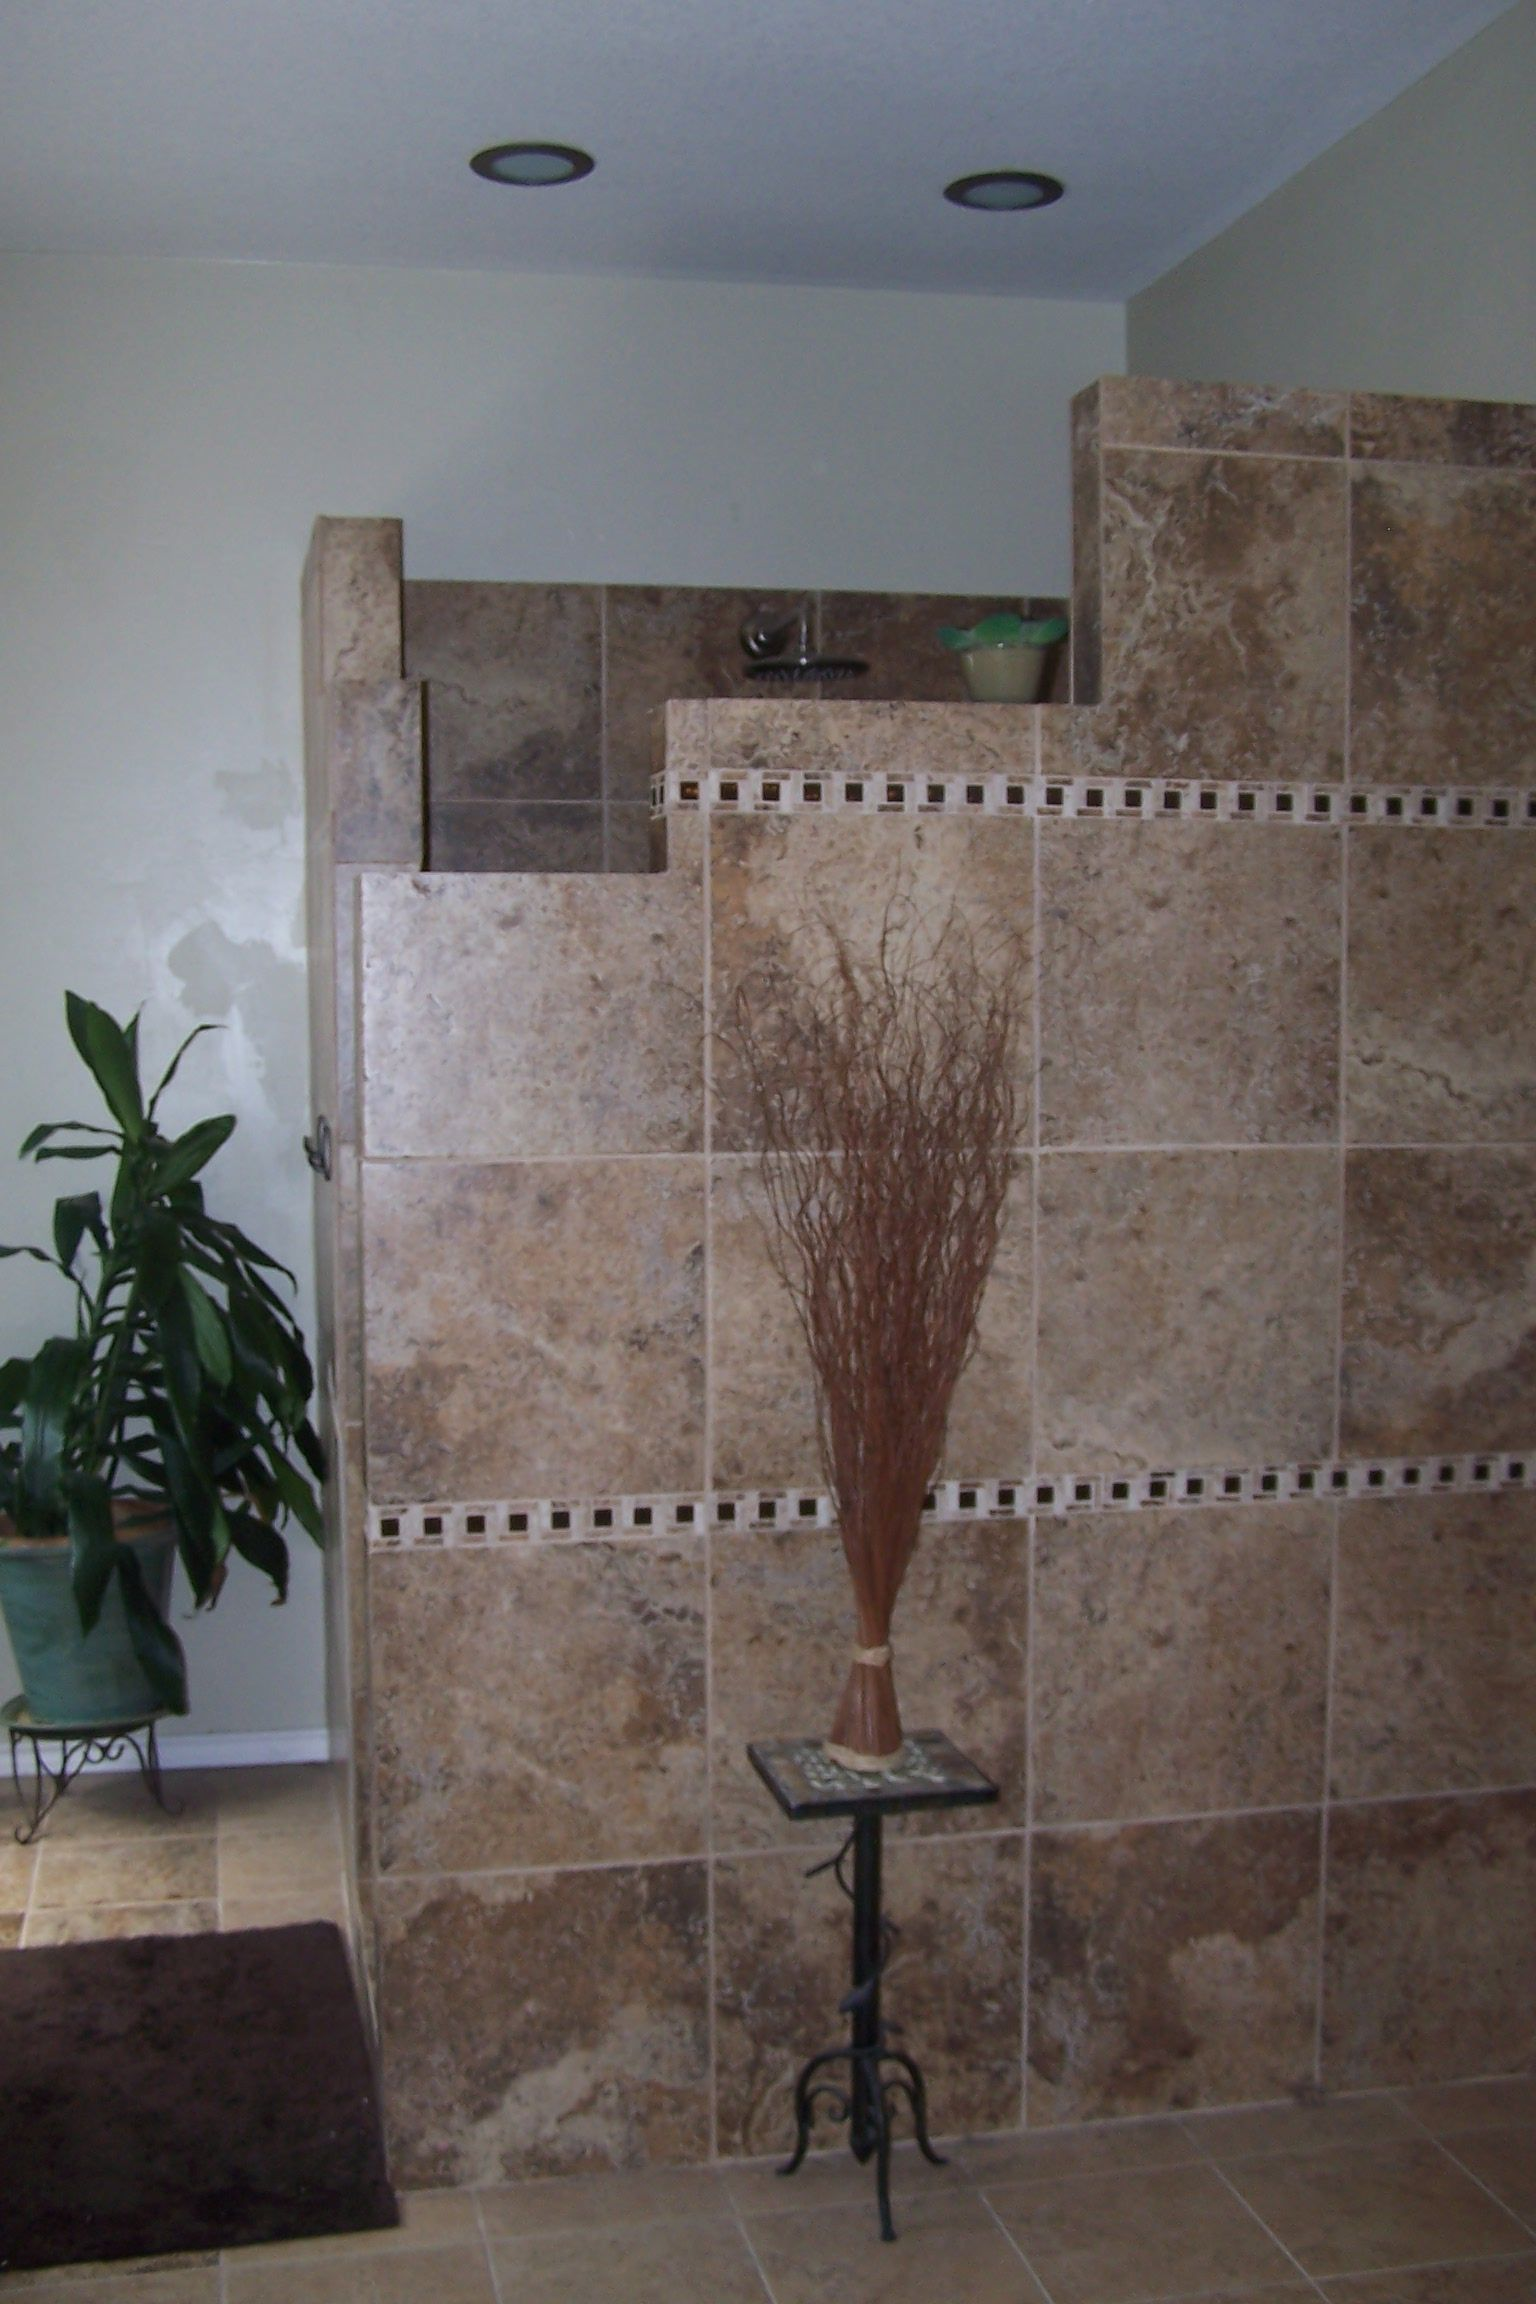 17  Images About Walk In Showers On Pinterest   Clean Shower     17  Images About Walk In Showers On Pinterest   Clean Shower  Before After Photo And Shower Heads